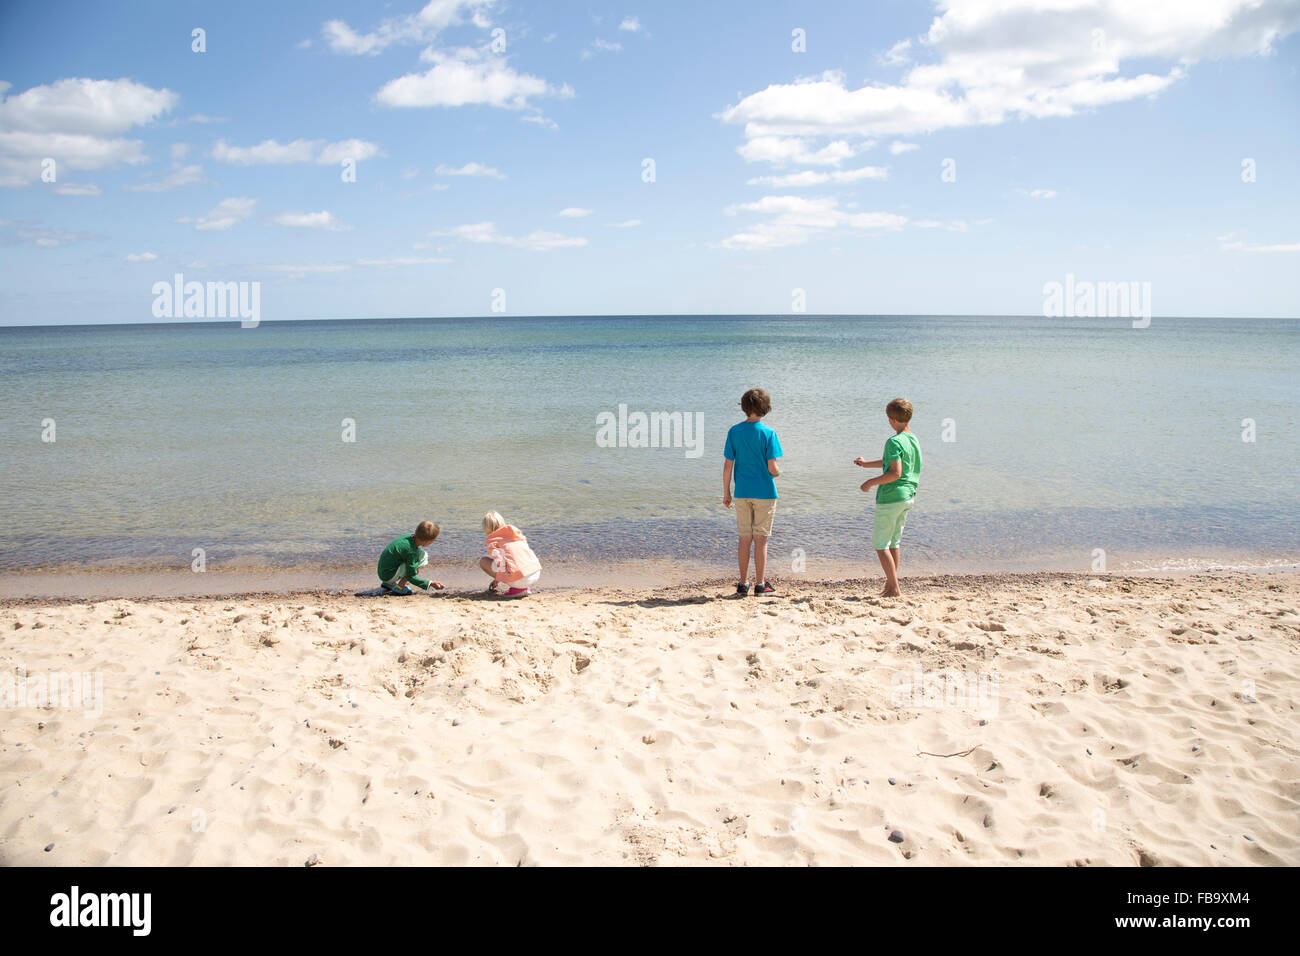 Sweden, Skane, Osterlen, Stenshuvud, Kids (8-9, 10-11, 12-13) playing on beach Stock Photo